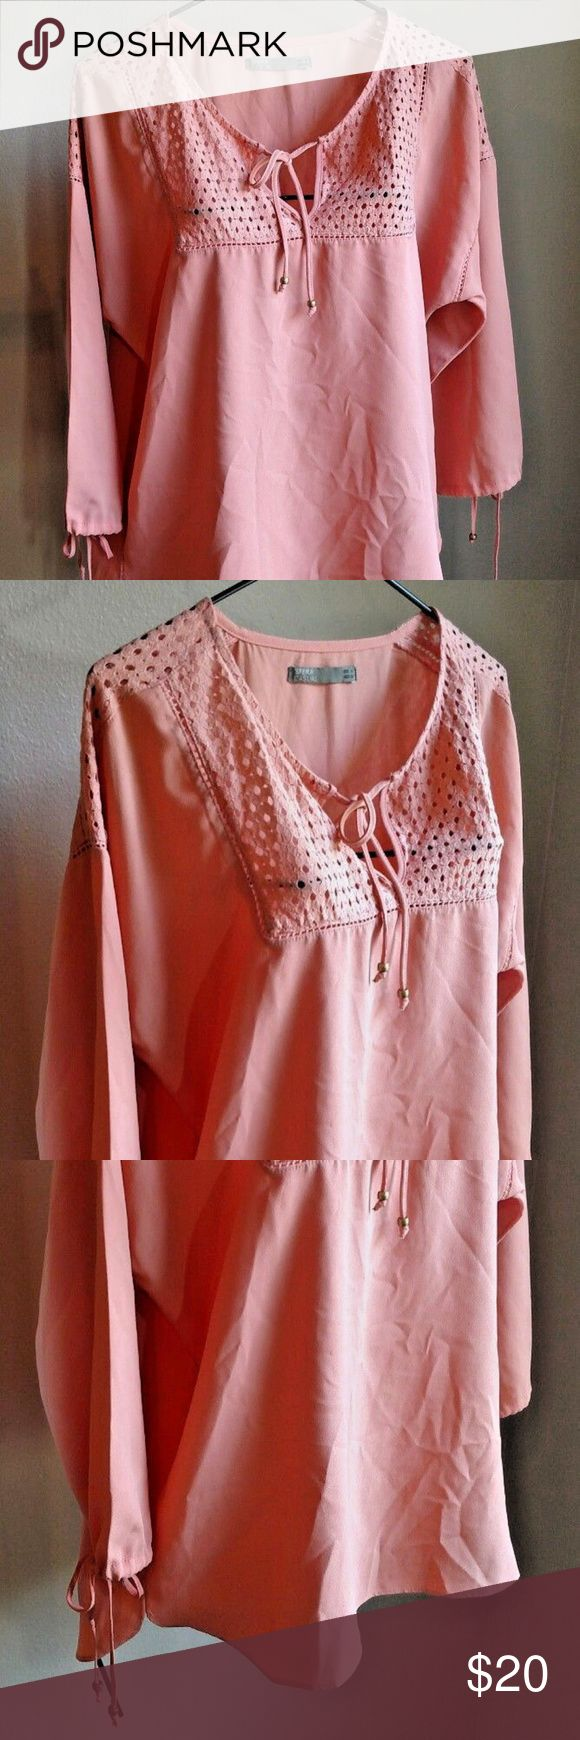 """Sfera Terra Cotta Peach Peasant Lace Boho Top Elegant boho style top is a shade of terra cotta to peach (Crayola markers added for shade reference). Fabric content tag has been removed but it feels like a poly blend. Lace inserts at yoke and shoulders. Tie front and sleeves with beads on each. Size medium by Sfera Casual measures about 23"""" flat across the bust and is about 23"""" long at the shoulder. In nice preowned condition without stains, tears, or other visible flaws. Sfera Tops Blouses"""